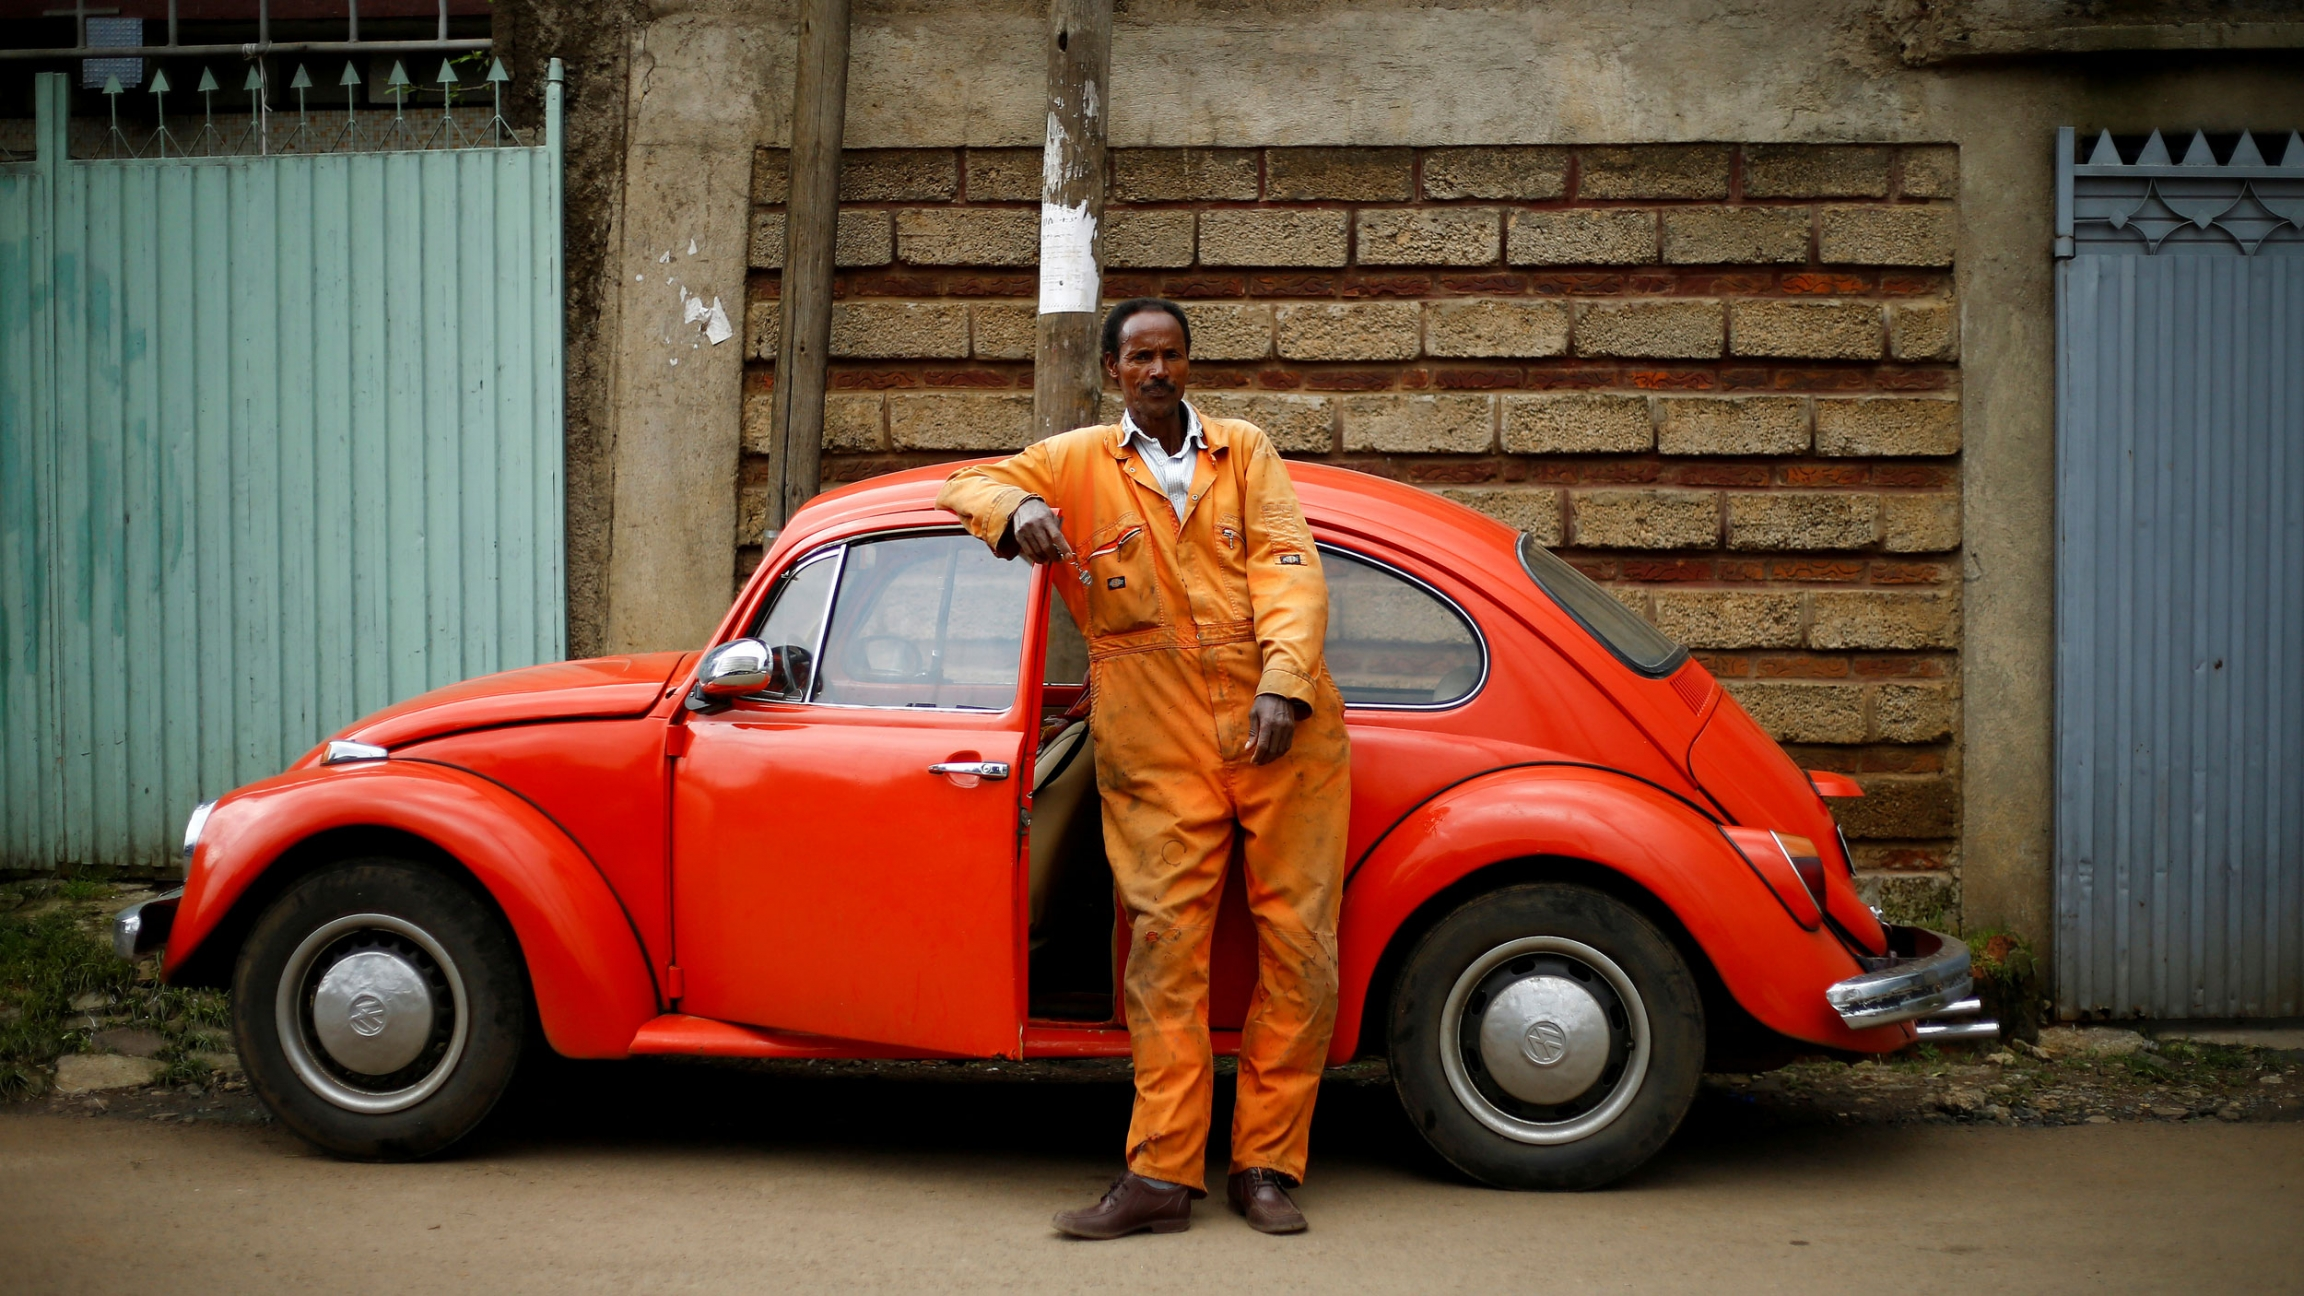 hight resolution of a man in an orange jump suit leans his arm on a red 1965 model volkswagen